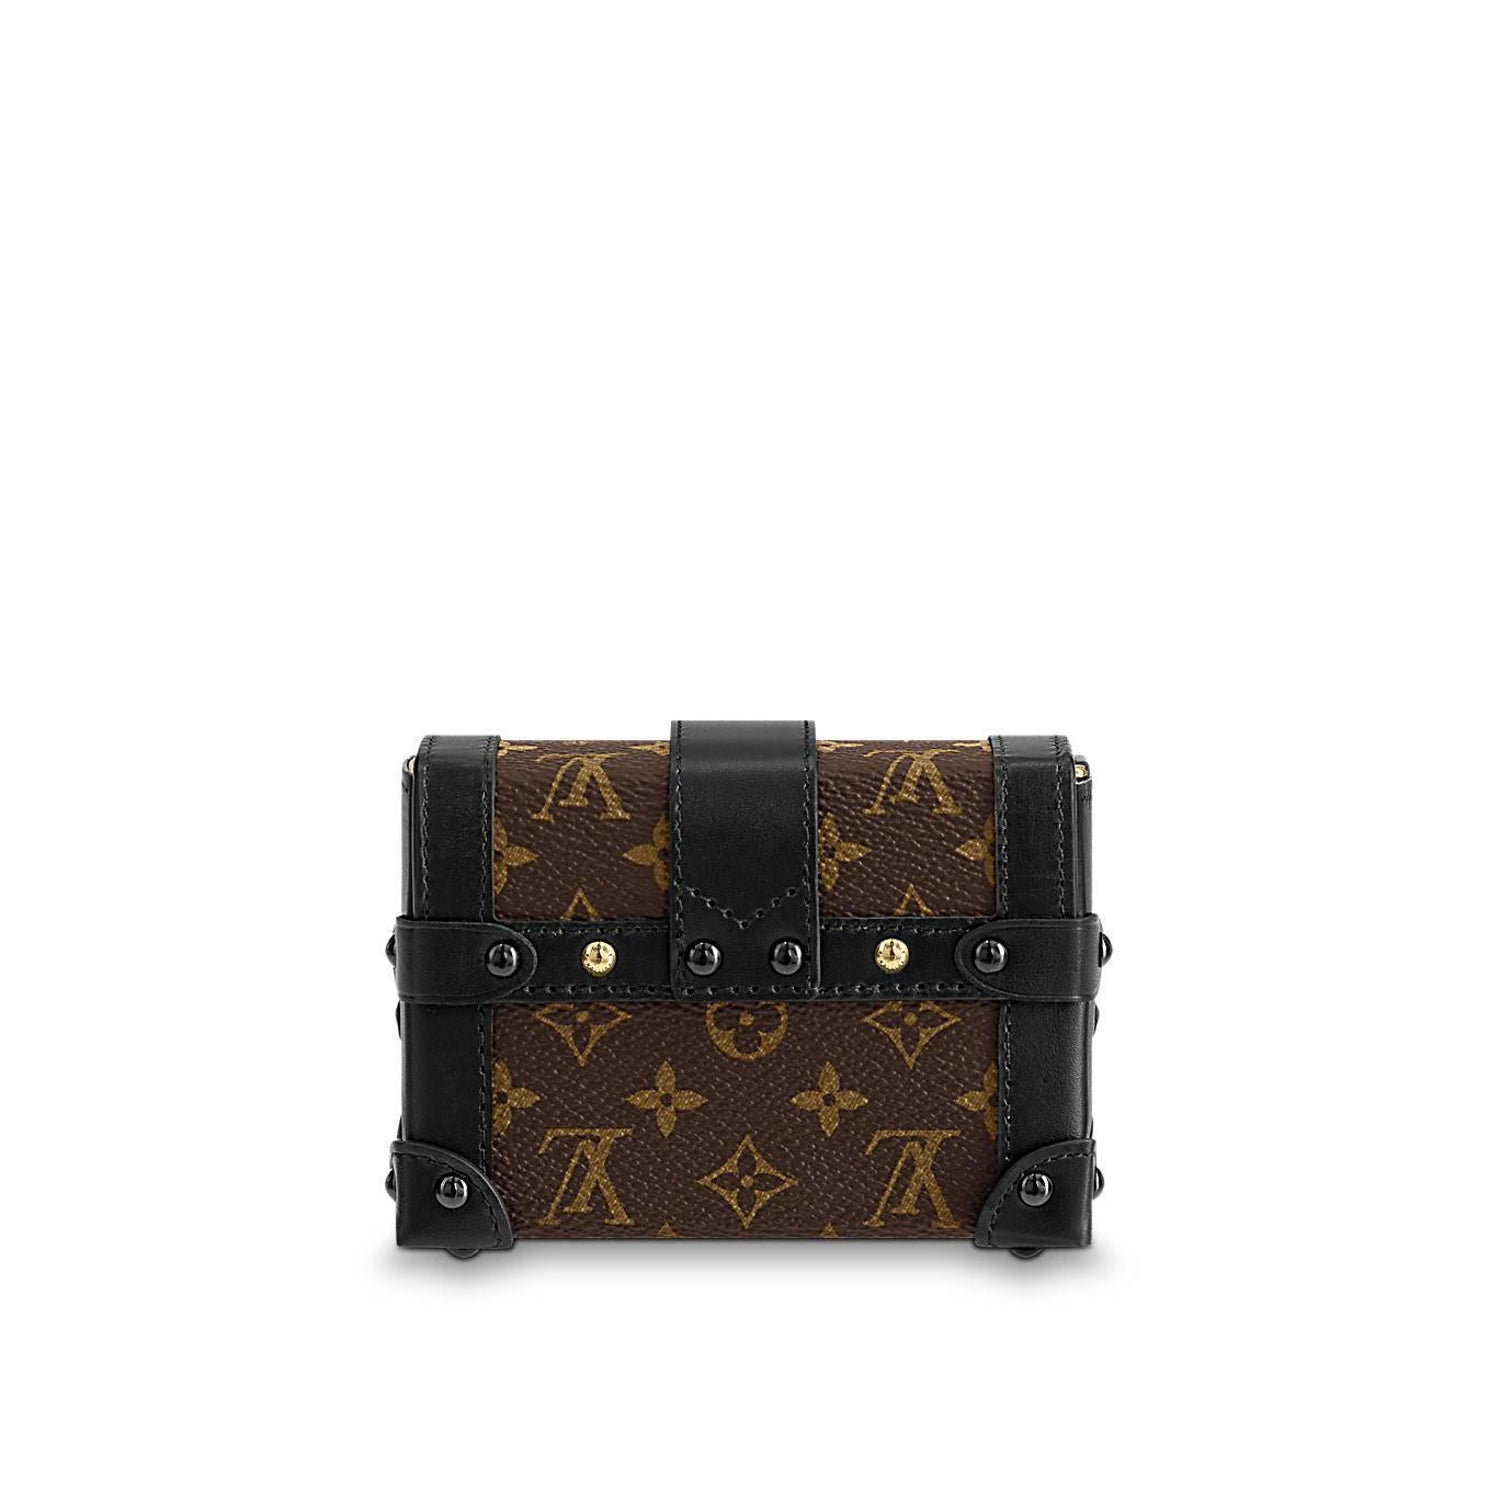 9f54b7528d9f Louis Vuitton Runway Miniature Essential Trunk Bag at 1stdibs